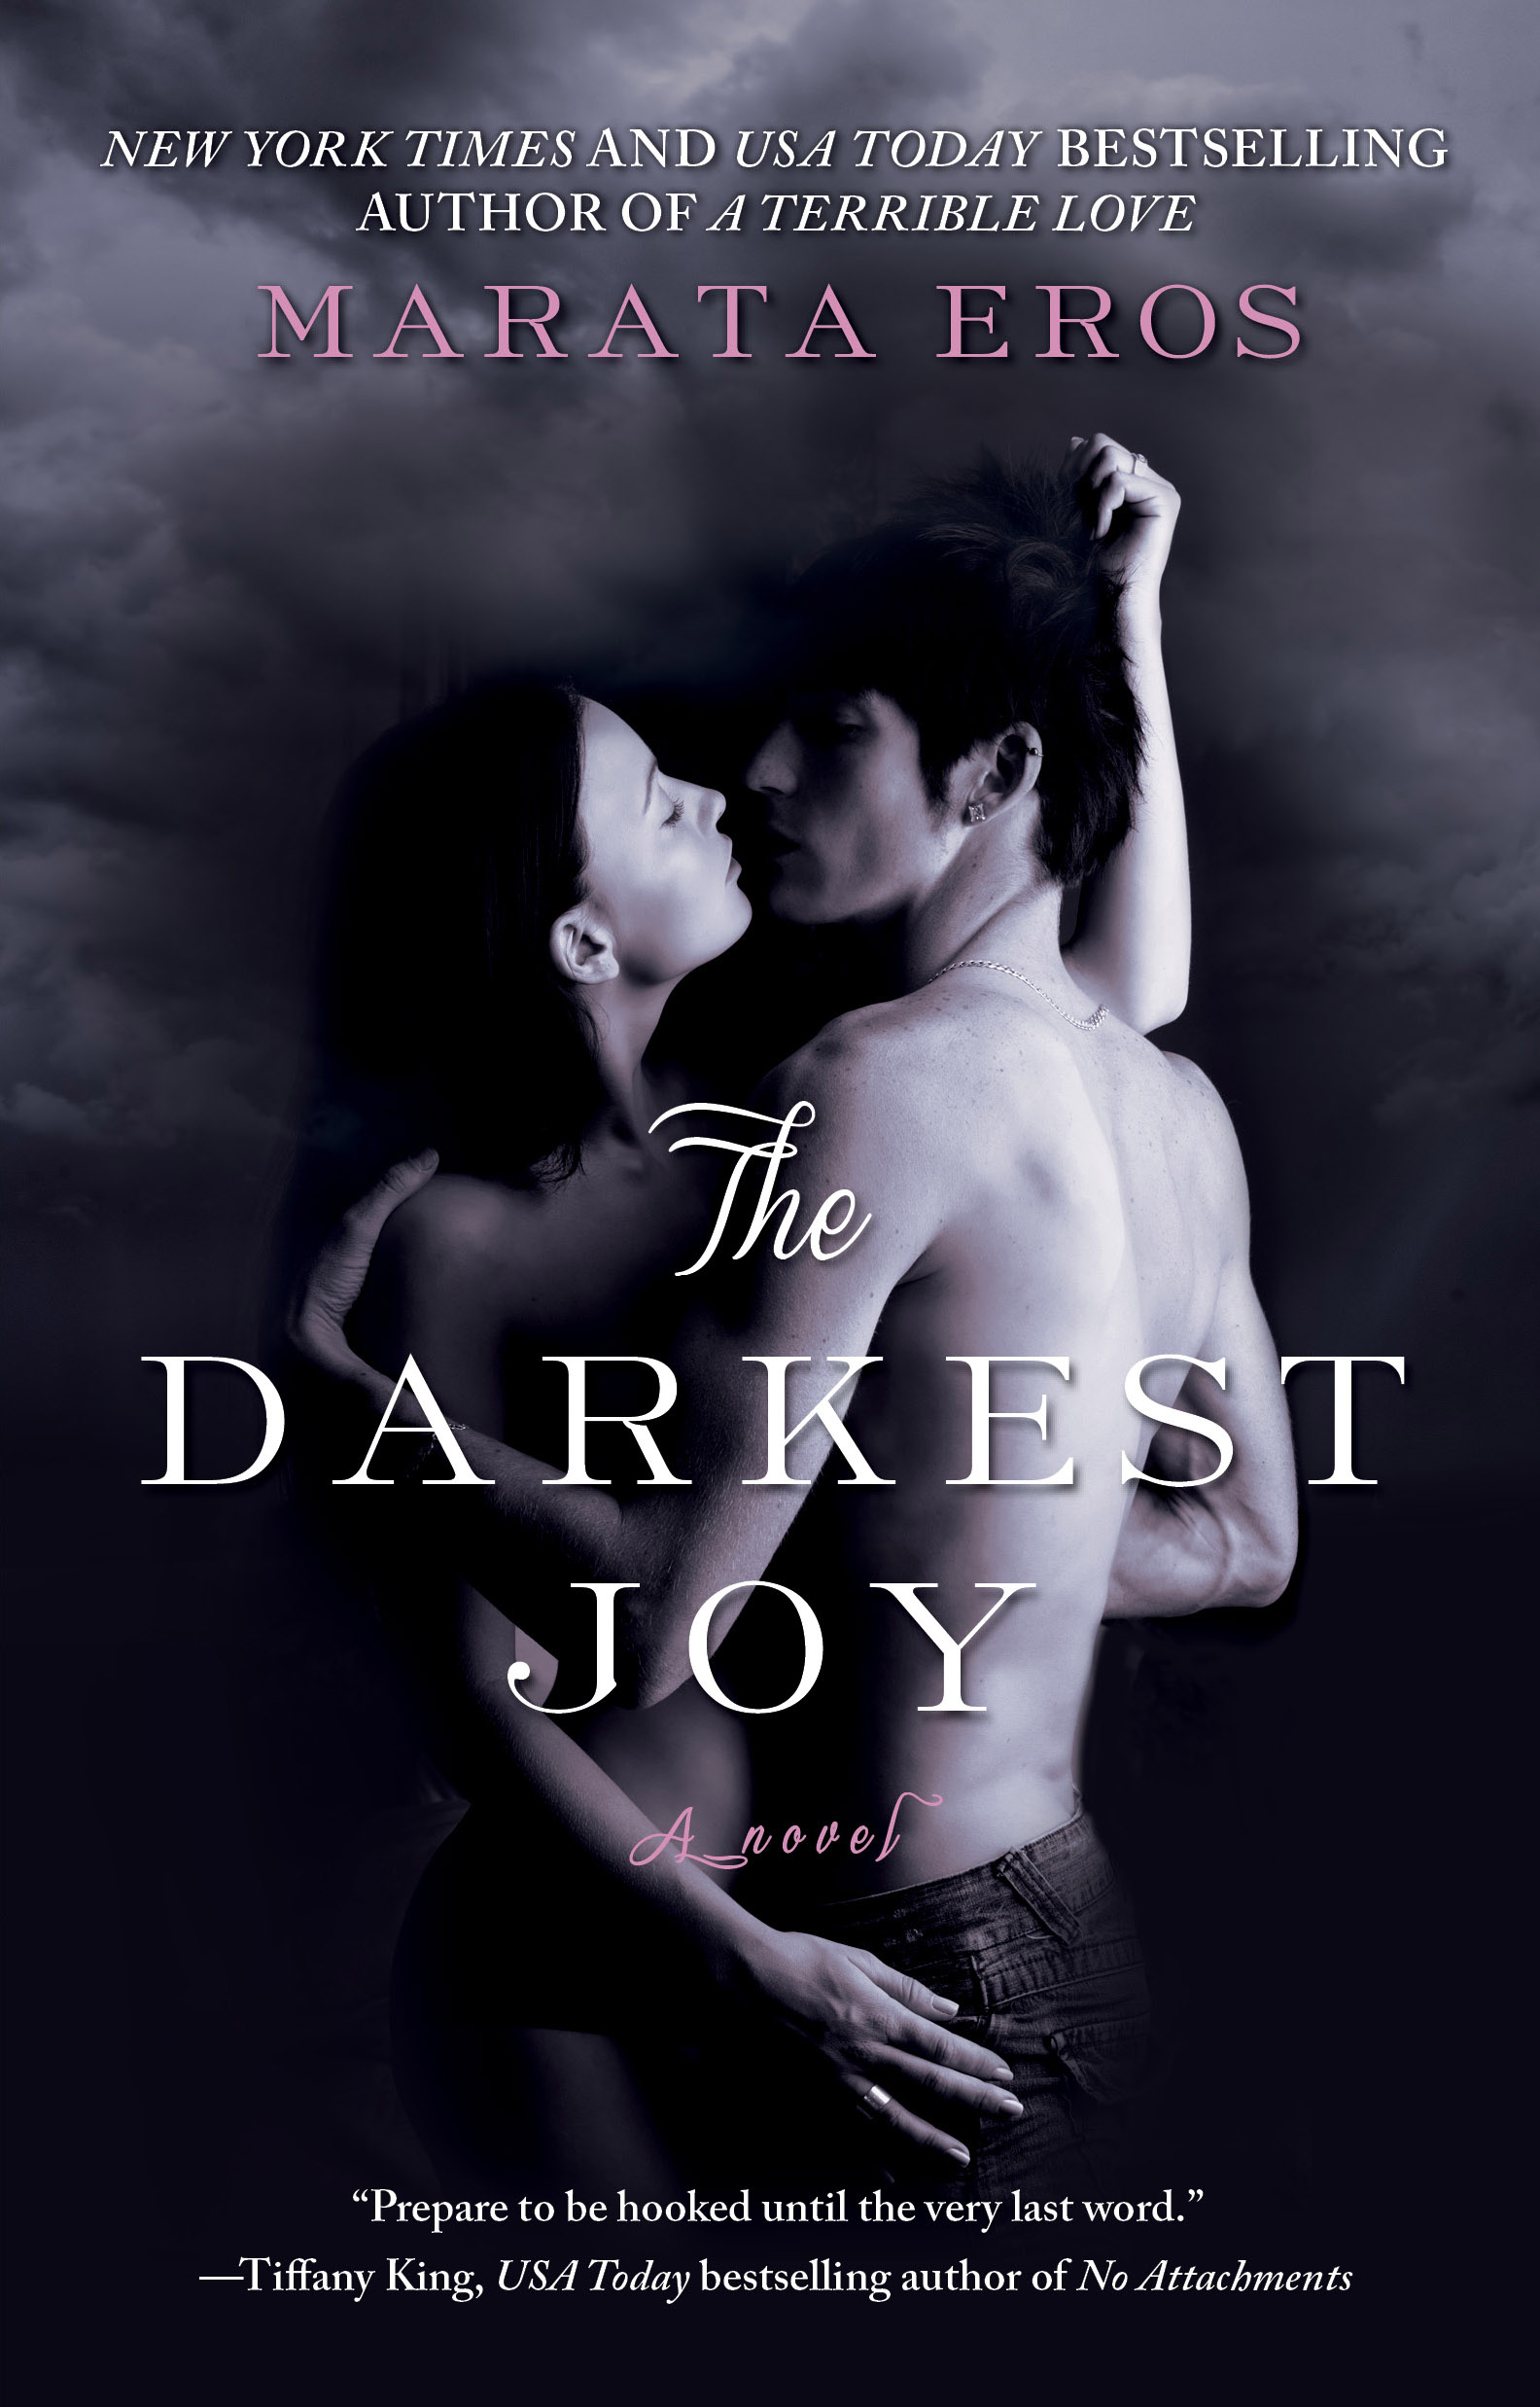 Darkest-joy-9781476752228_hr